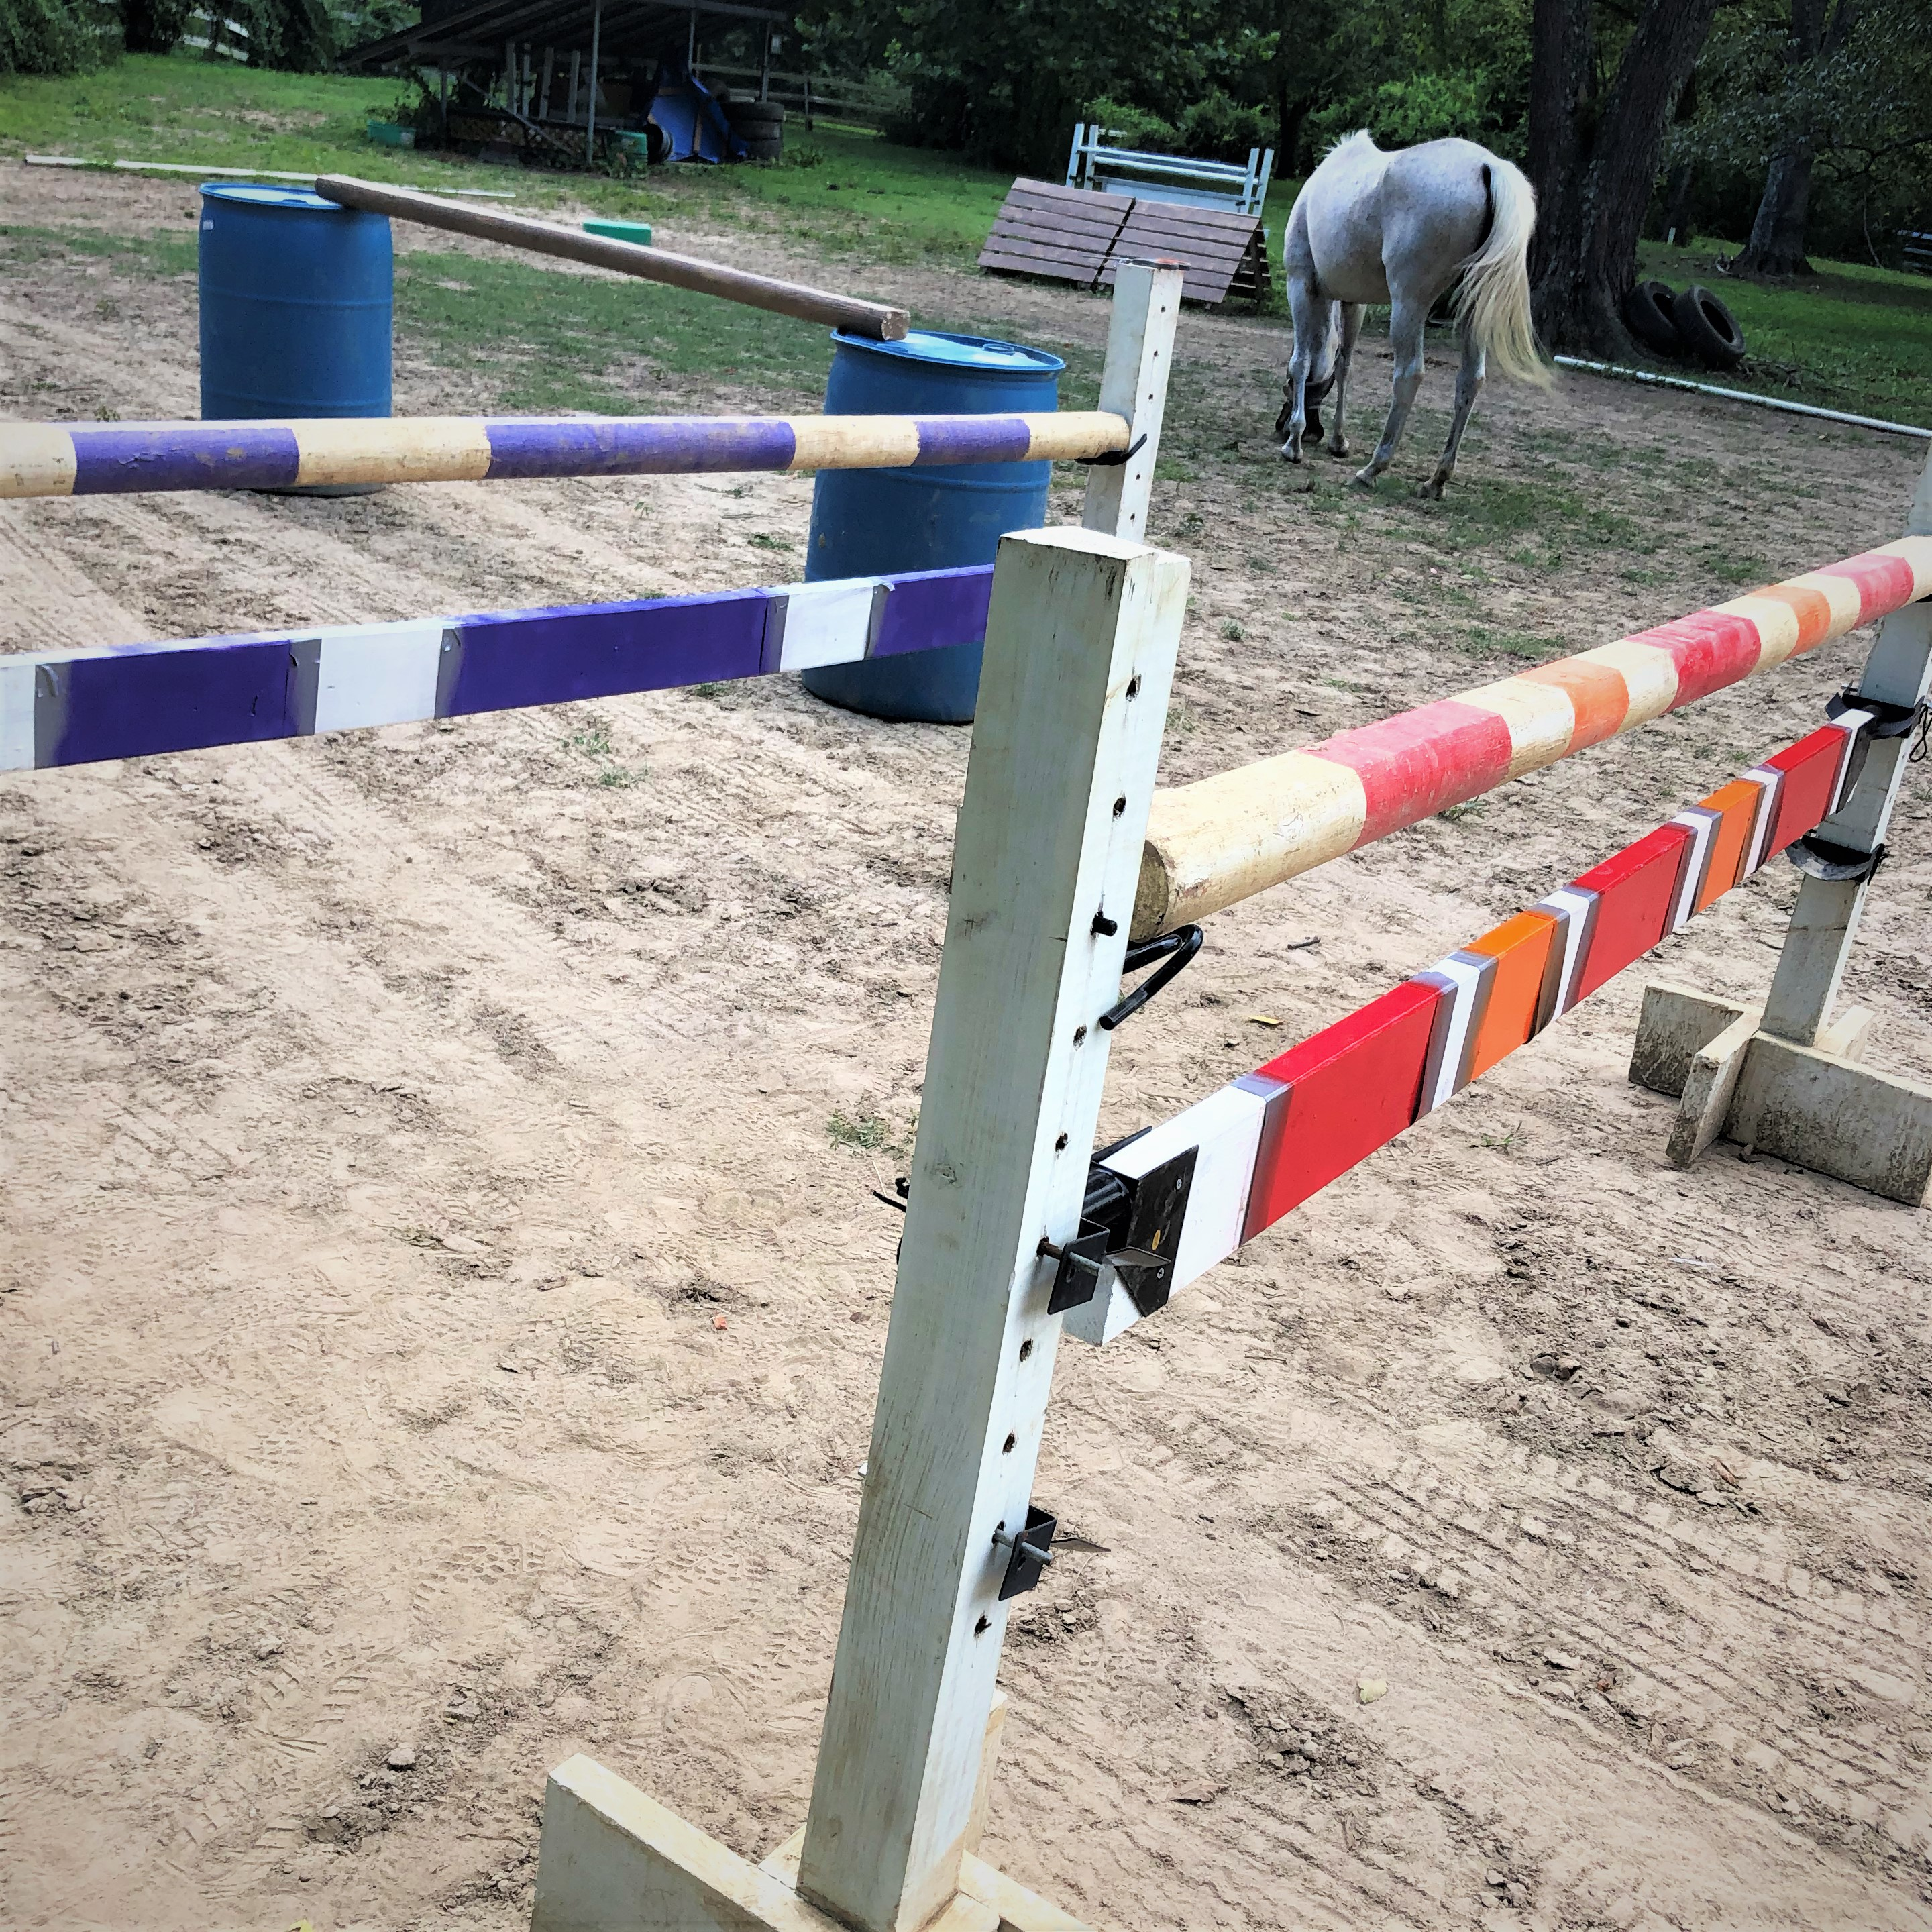 Barn Hacks Diy Projects Diy Arena Equipment